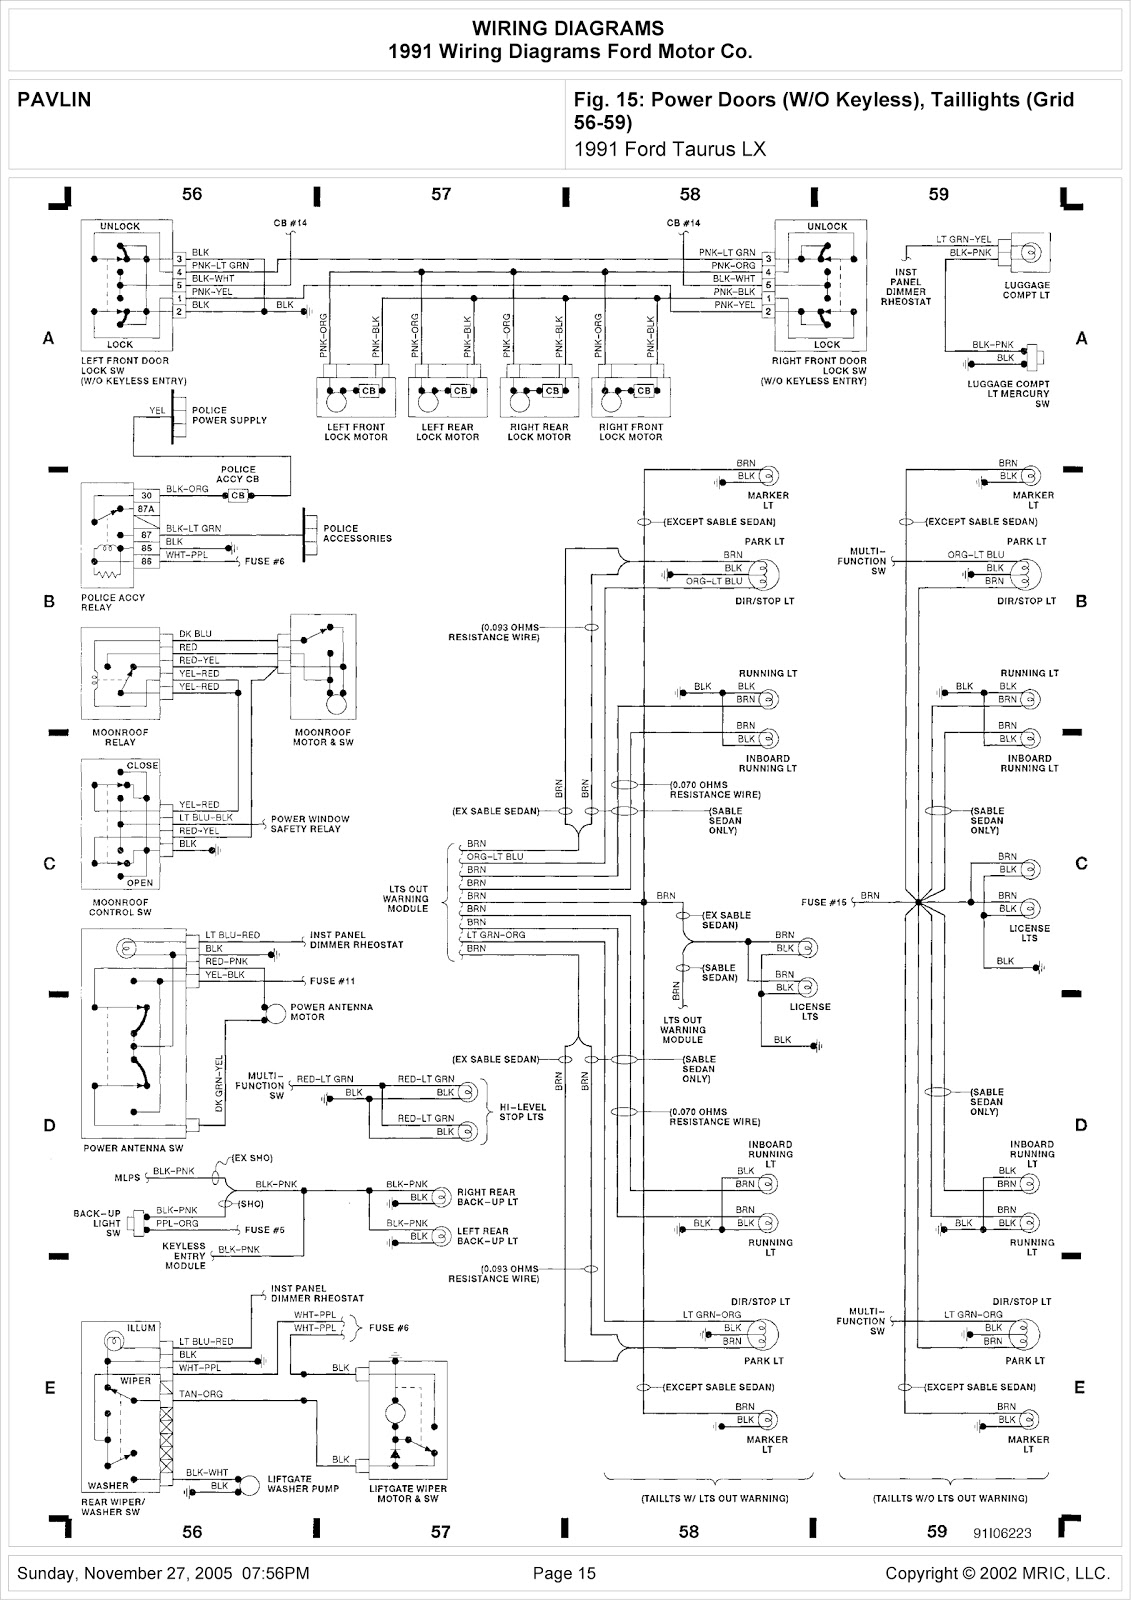 1991 Ford Taurus LX System Wiring Diagram Power Doors Taillights | Schematic Wiring Diagrams